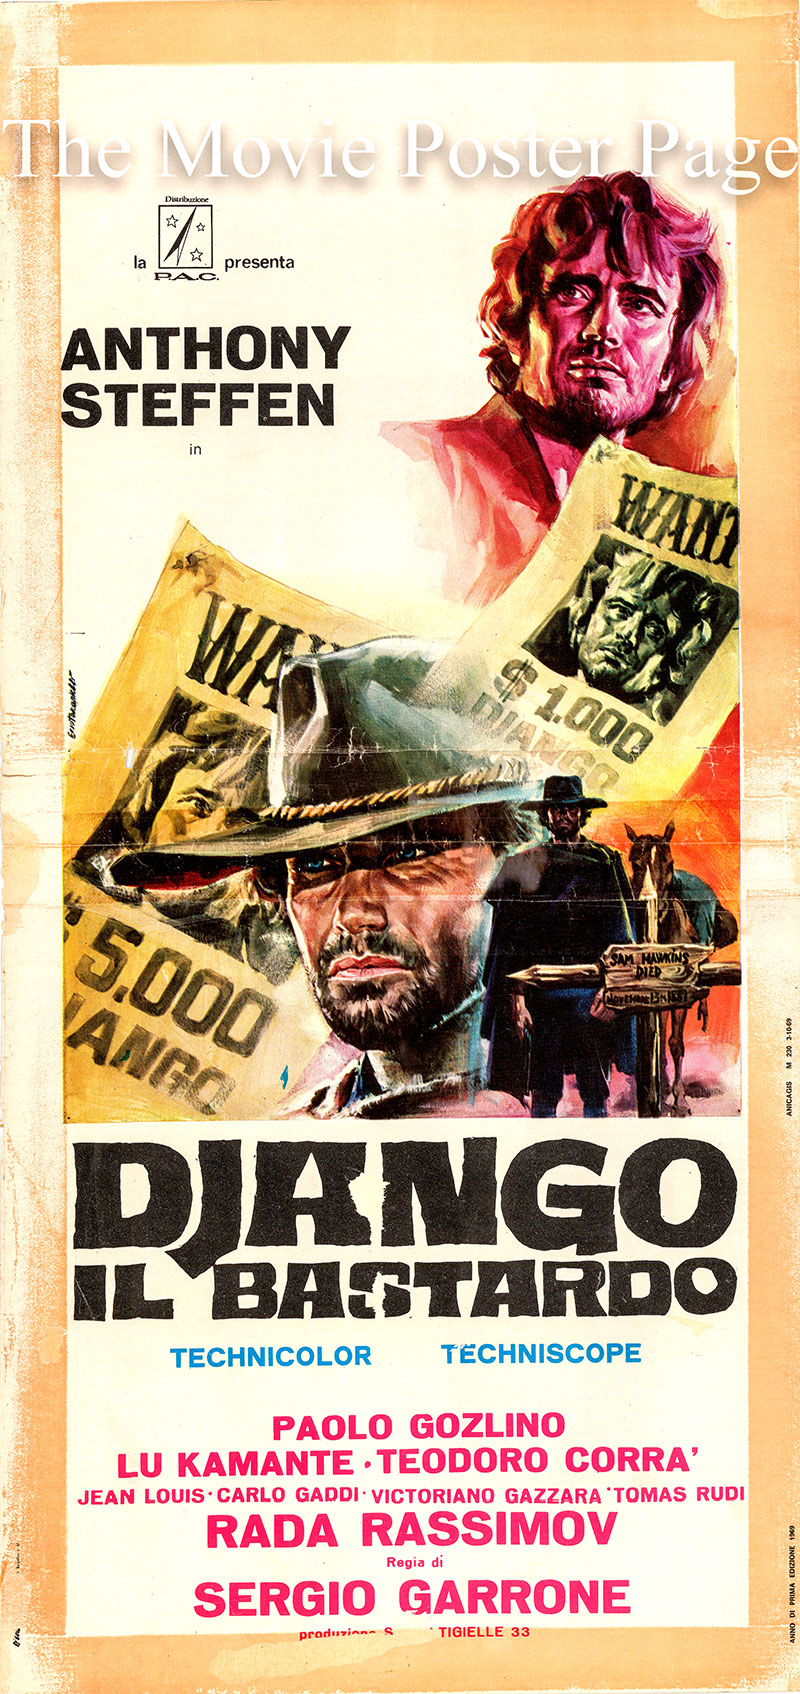 Pictured is an Italian locandina poster for the 1969 Sergio Garrone film Django the Bastard starring Anthony Steffen as Django.